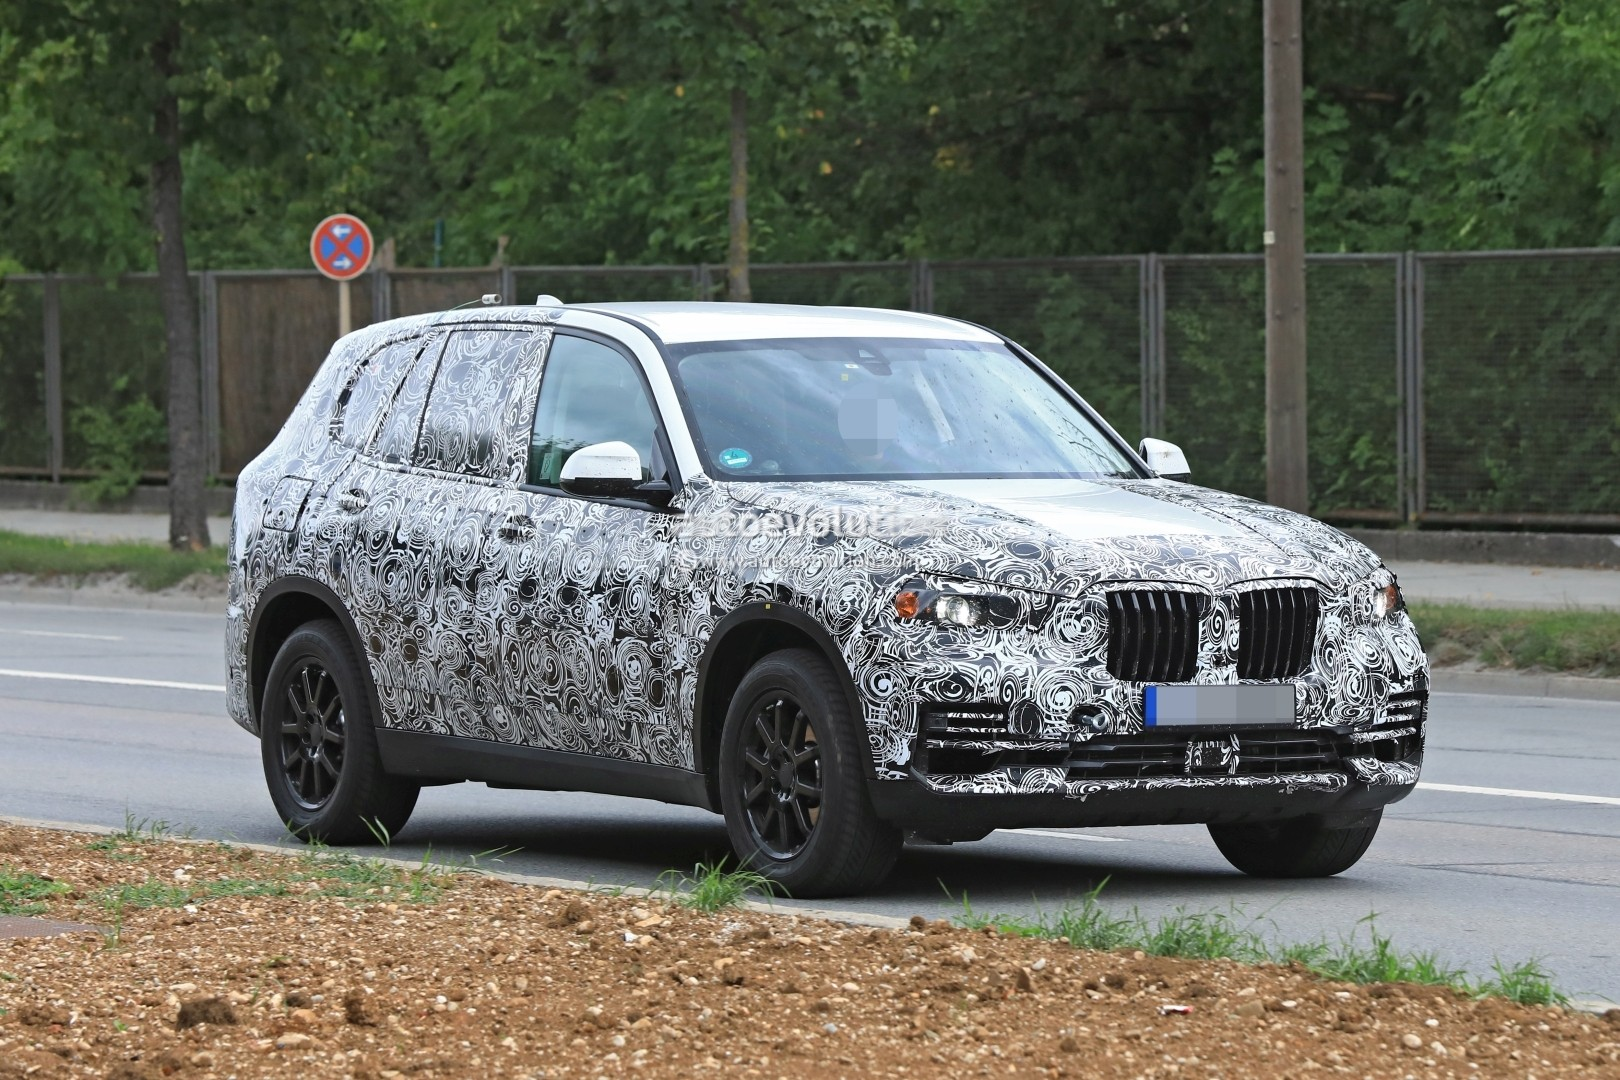 2019-bmw-x5-spied-prototype-reveals-new-angular-design-front-air-intakes_3